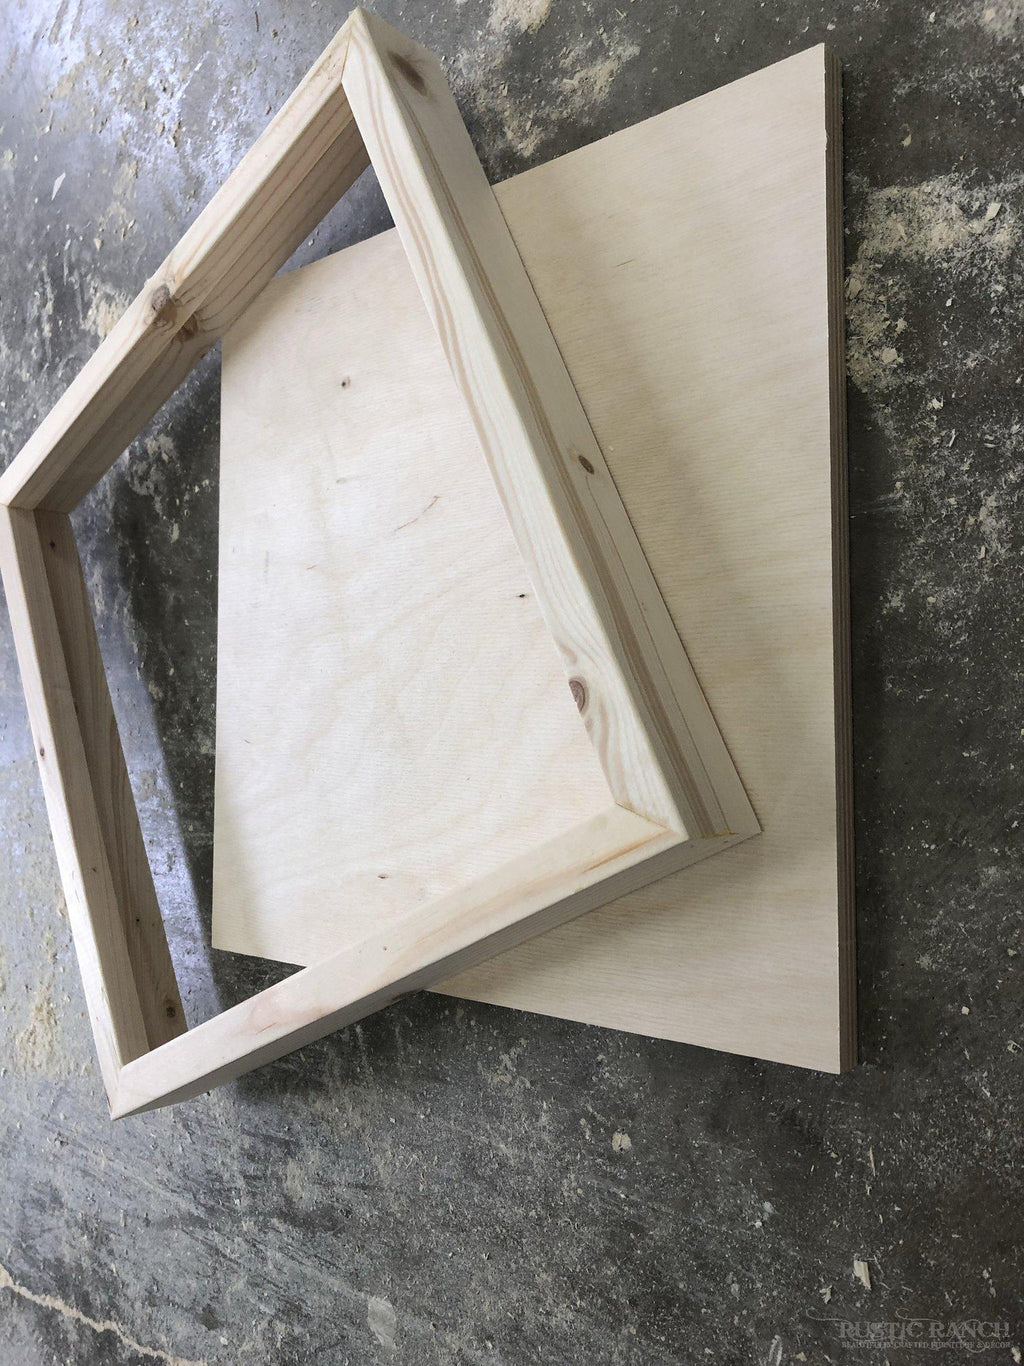 12X12 FRAMED SIGN BLANKS-Rustic Ranch